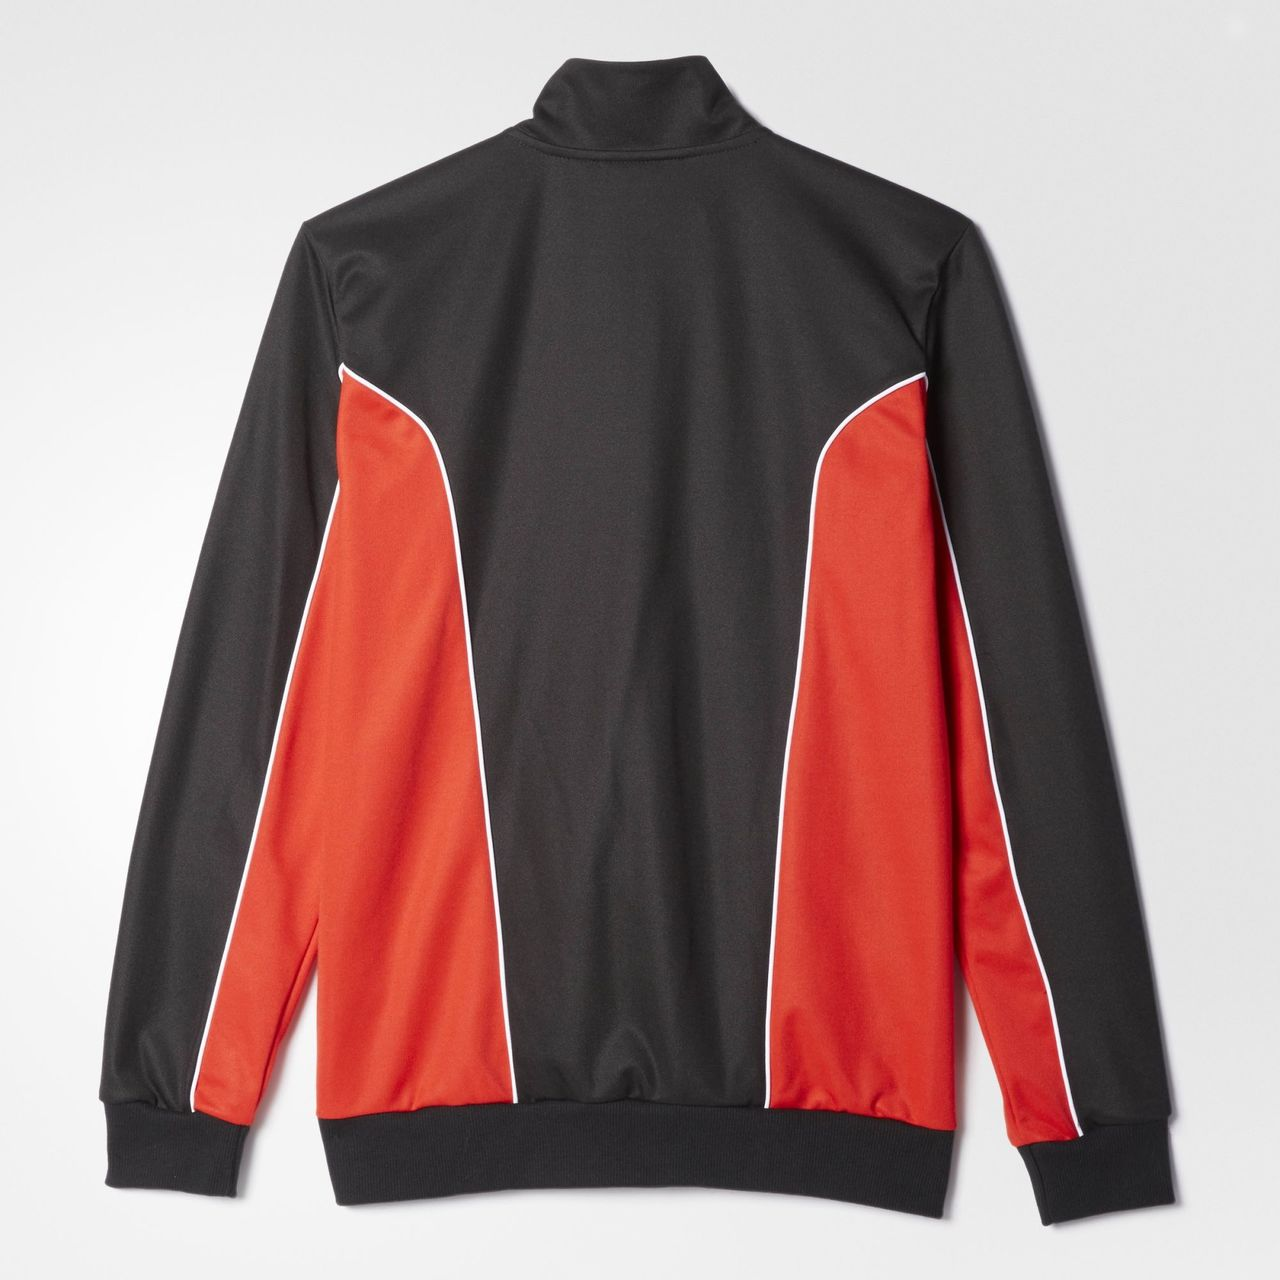 Manchester United FC 80s Adidas Originals Track Jacket